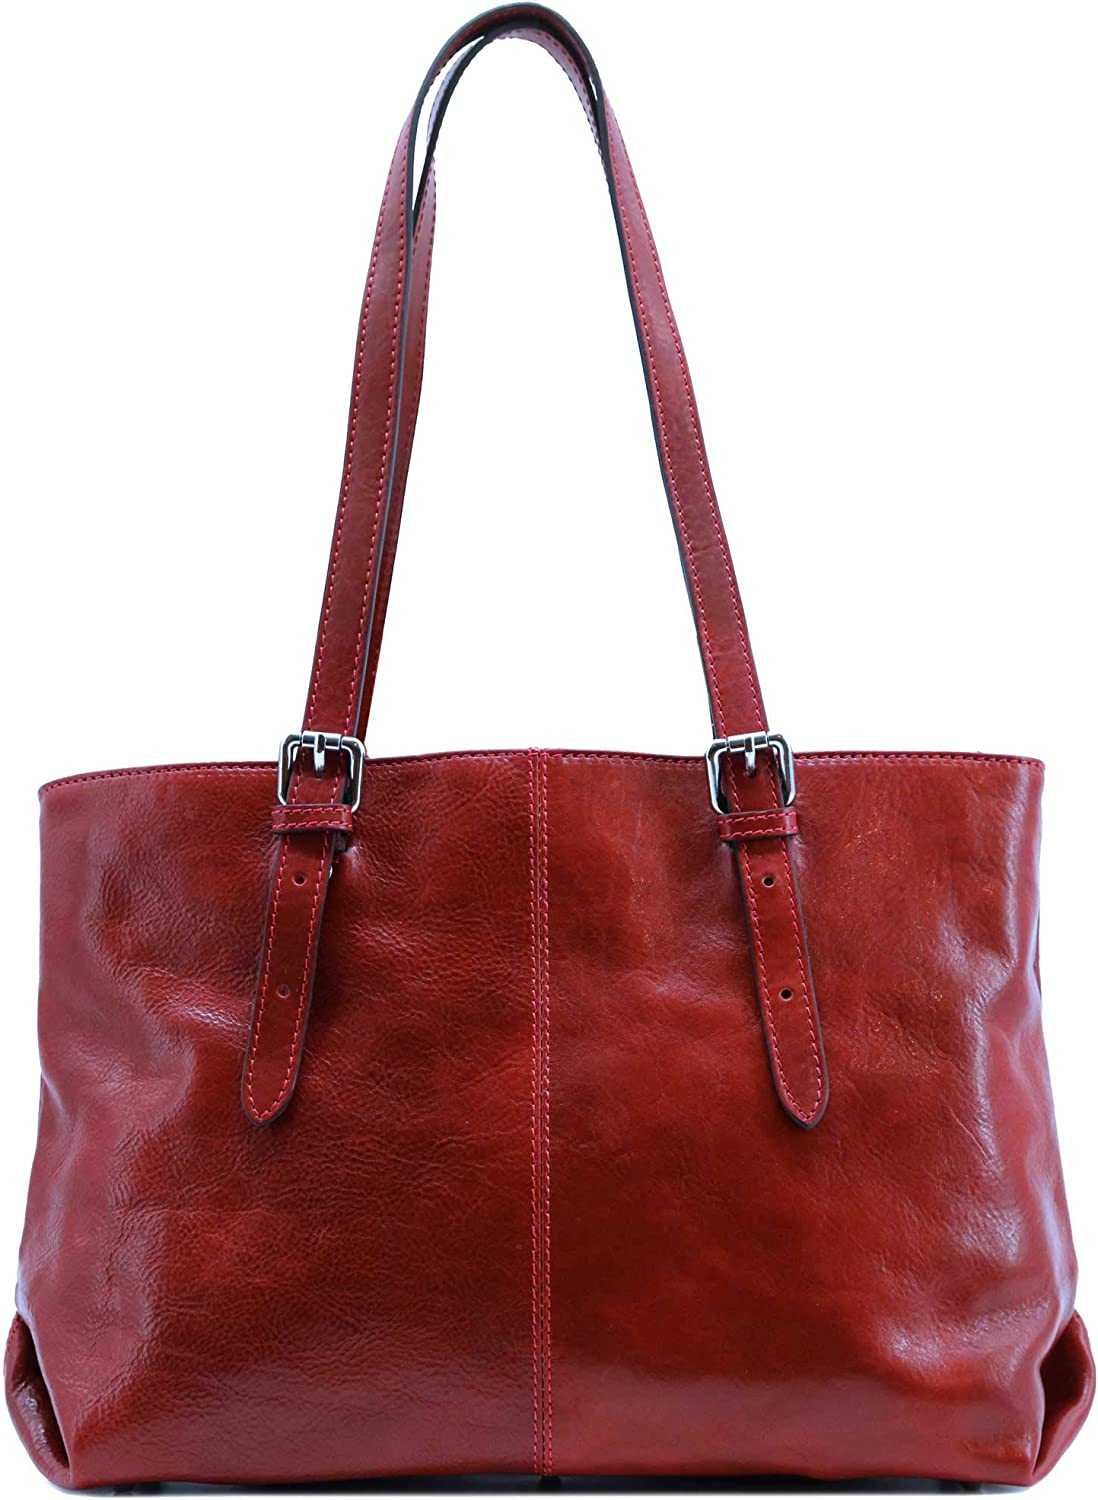 Floto Venezia Italian Leather Shopping Tote Bag Shoulder Bag Women's (Tuscan Red)